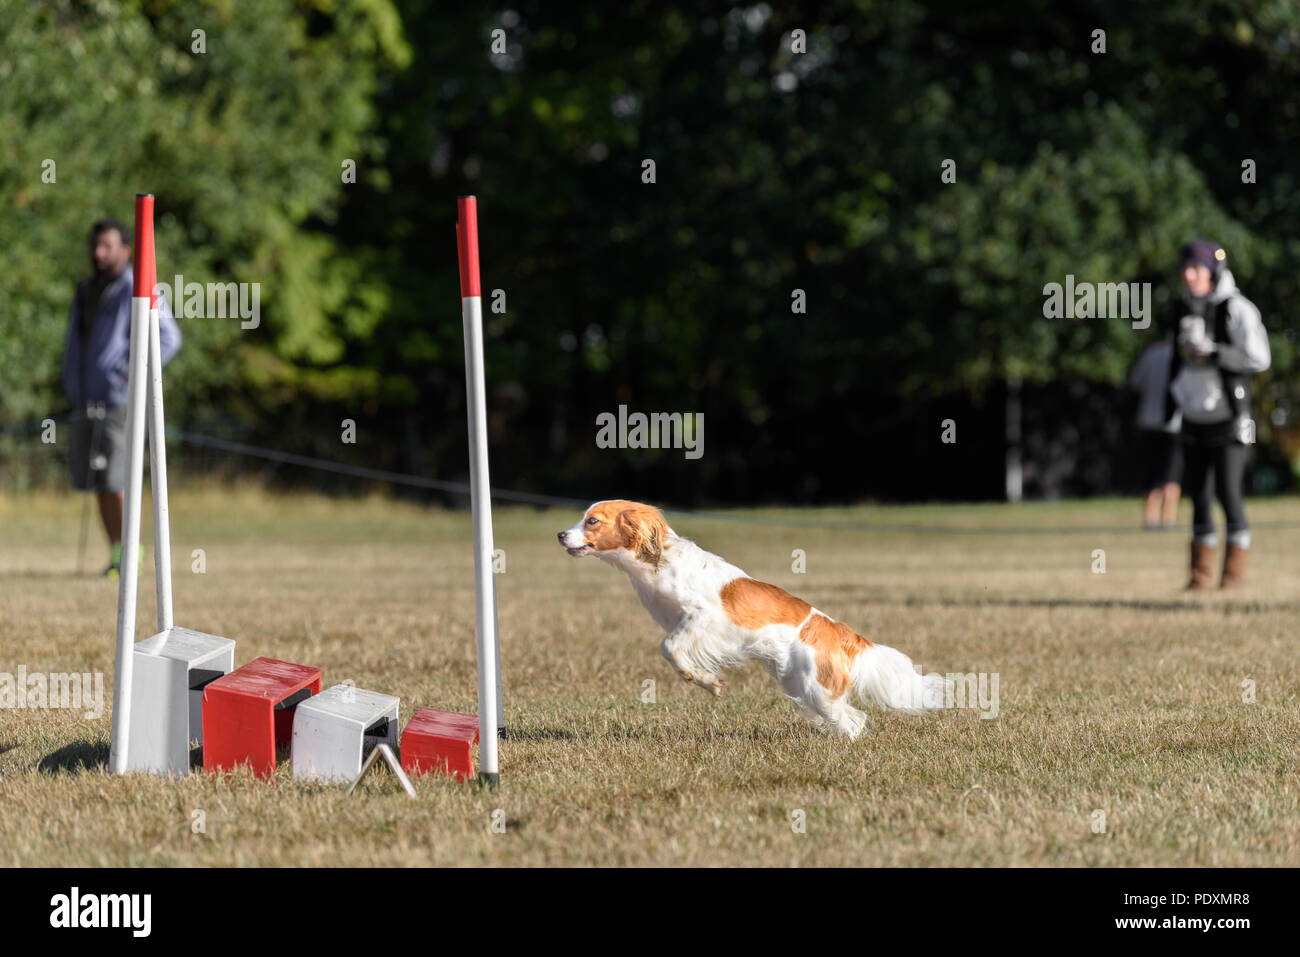 Rockingham Castle, Corby, England. 11th August 2018. With a look of keen concentration, a competing dog launches itself at a hurdle in the Kennel Club's international dog agility competition in the Great Park of Rockingham castle, Corby, England, on 1th August 2018. Credit: Michael Foley/Alamy Live News Stock Photo